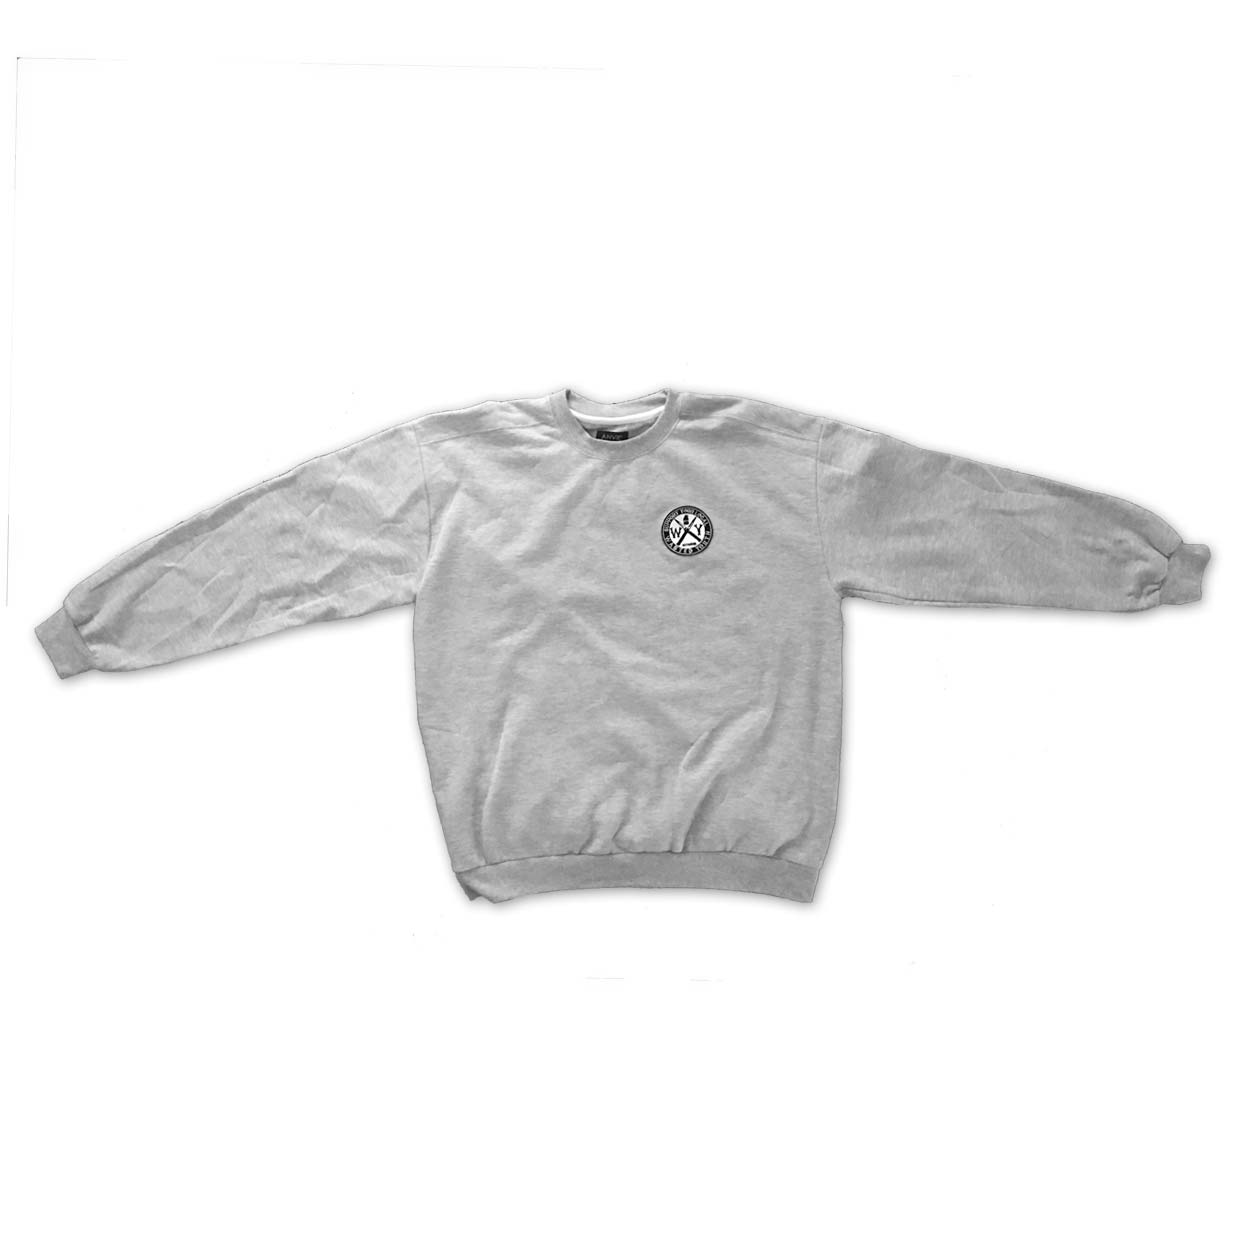 Support Patch Crew Neck Grey